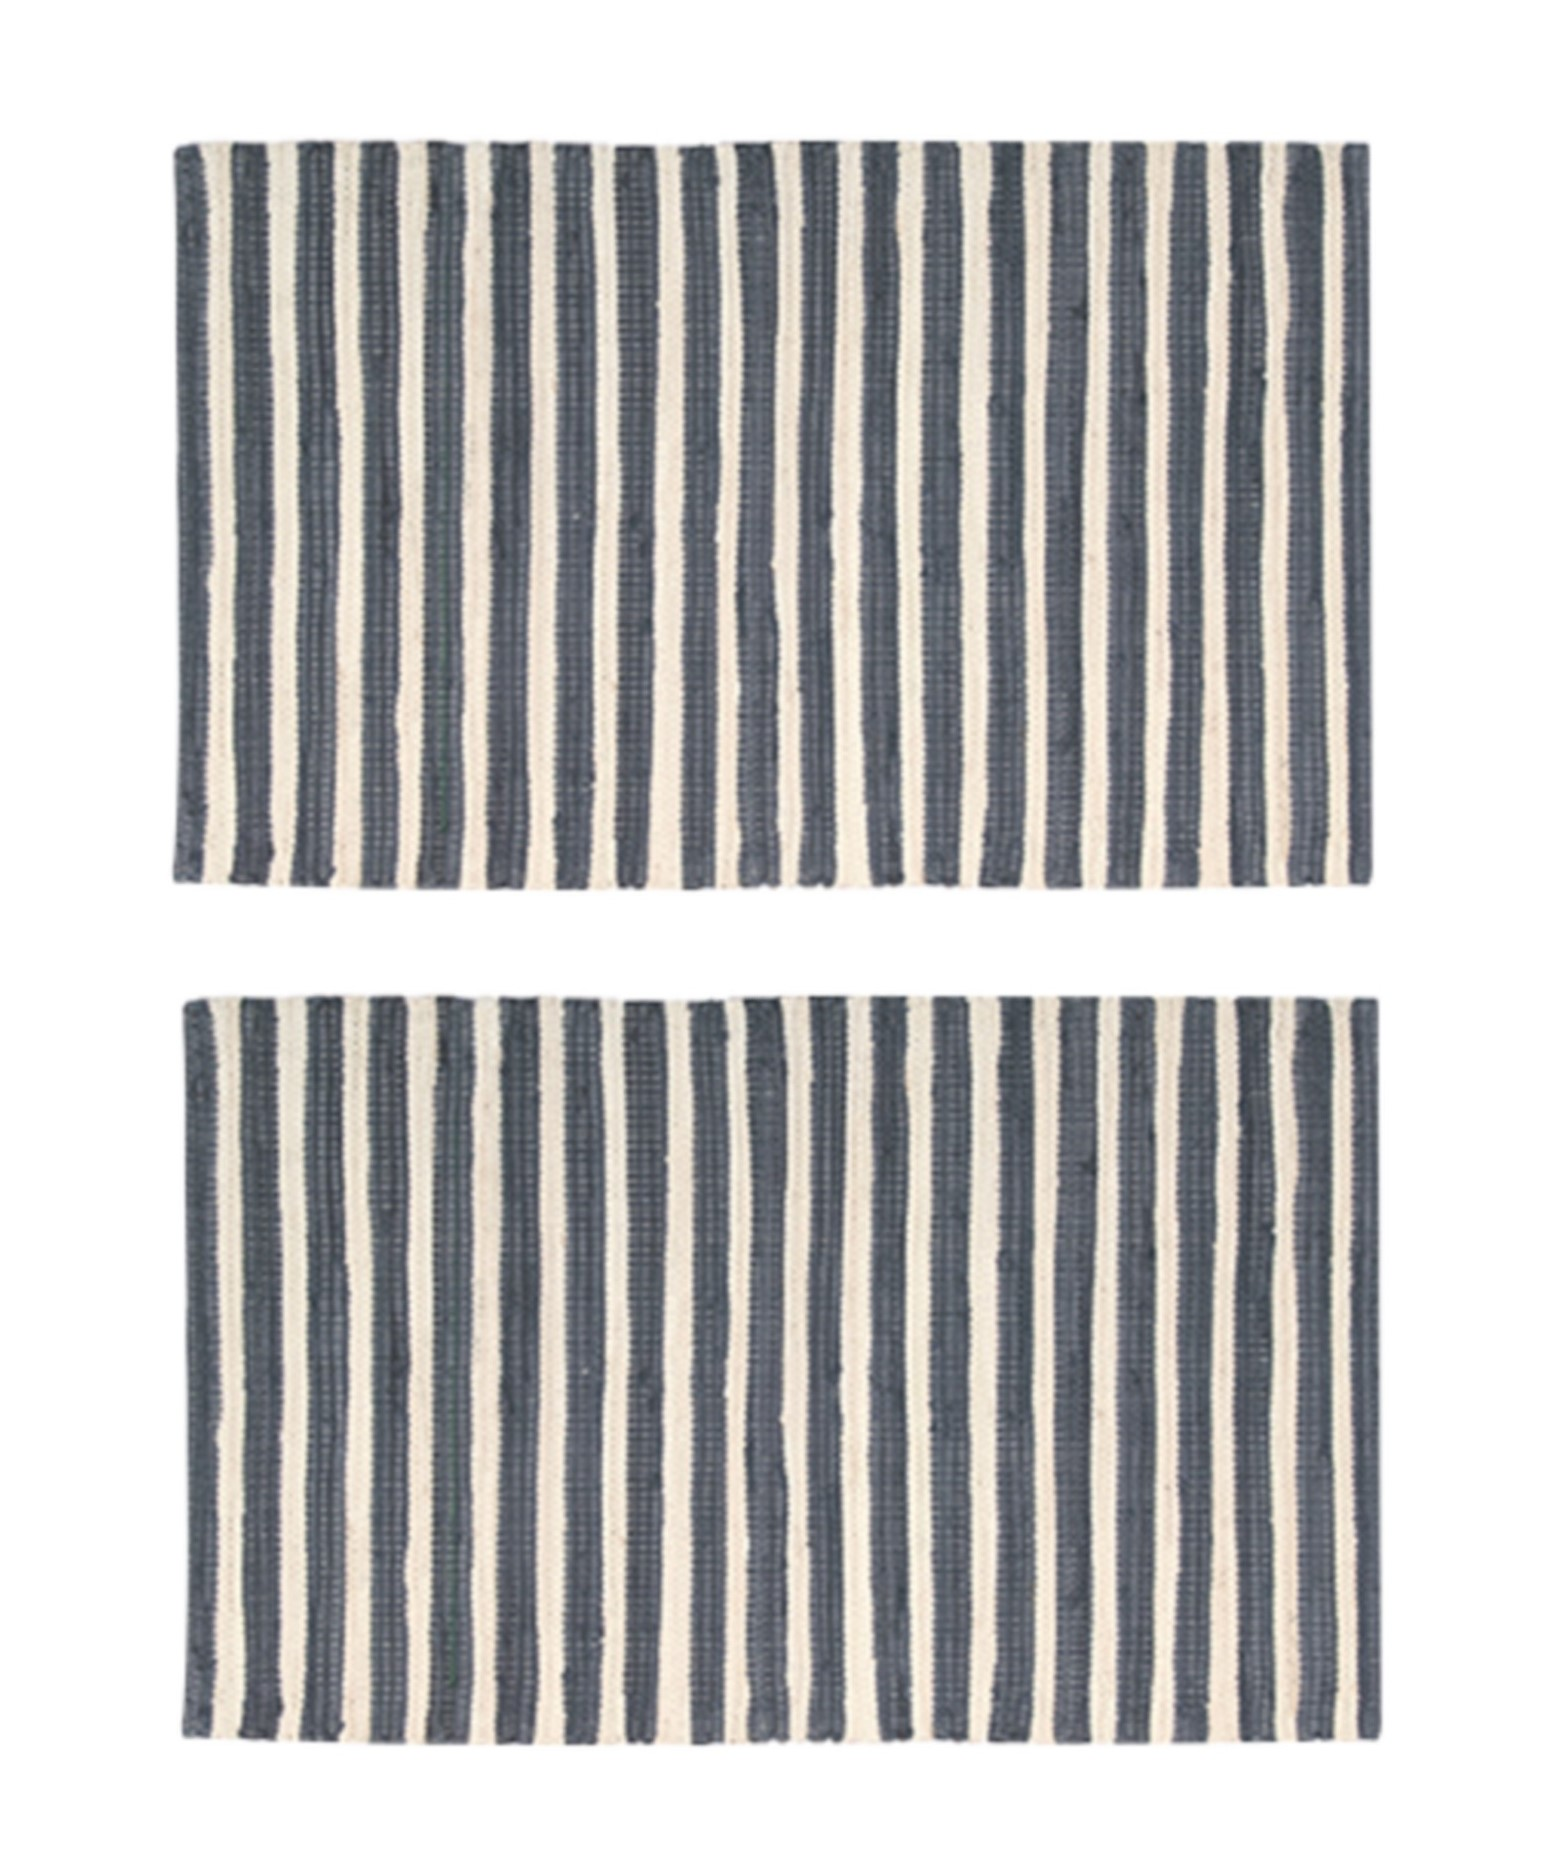 2-PACK-Nourison-Brunswick-Stripe-Accent-Floor-Area-Rugs-24-034-x-36-034-or-30-034-x-48-034 thumbnail 8